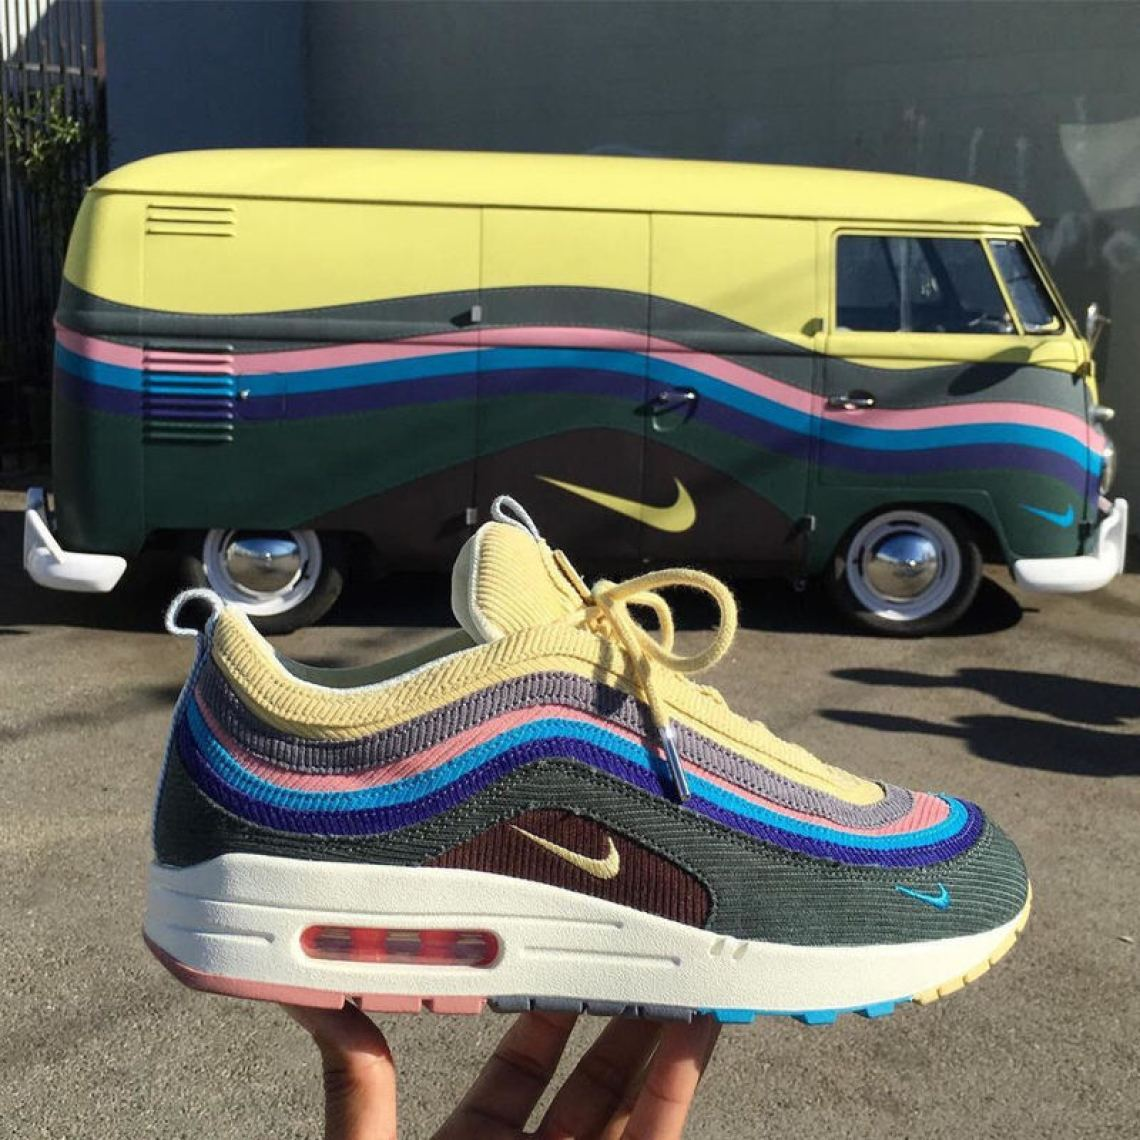 The first look at Sean Wotherspoon's Air Max 1/97 hybrid.